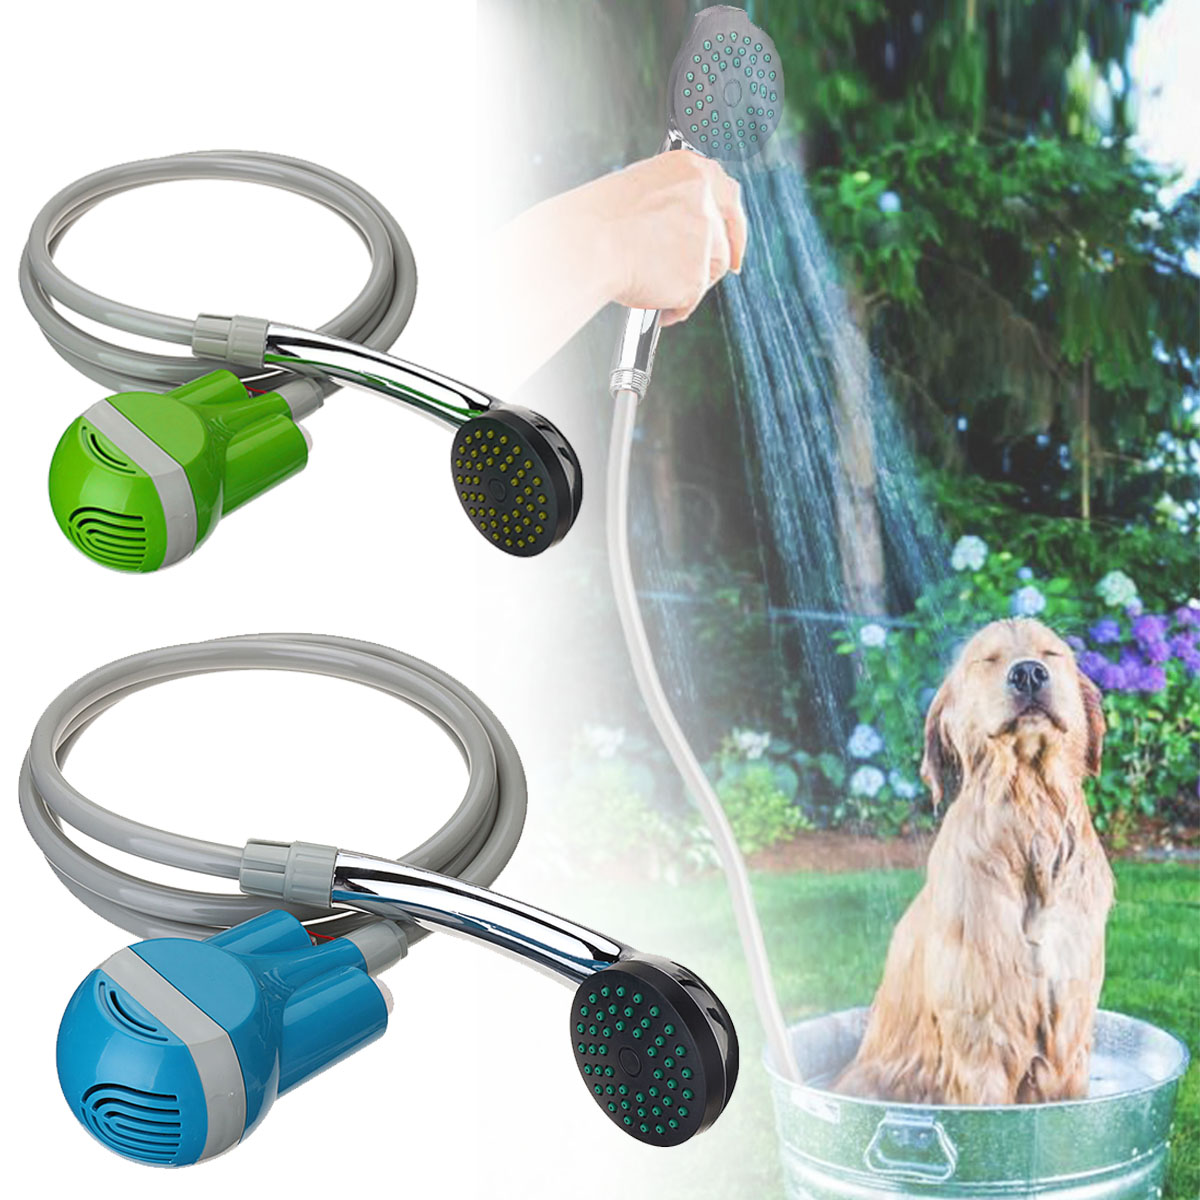 Cleaner Shower-Set Washing-Sprayer Water-Pumps Rechargeable Camping USB Caravan Travel